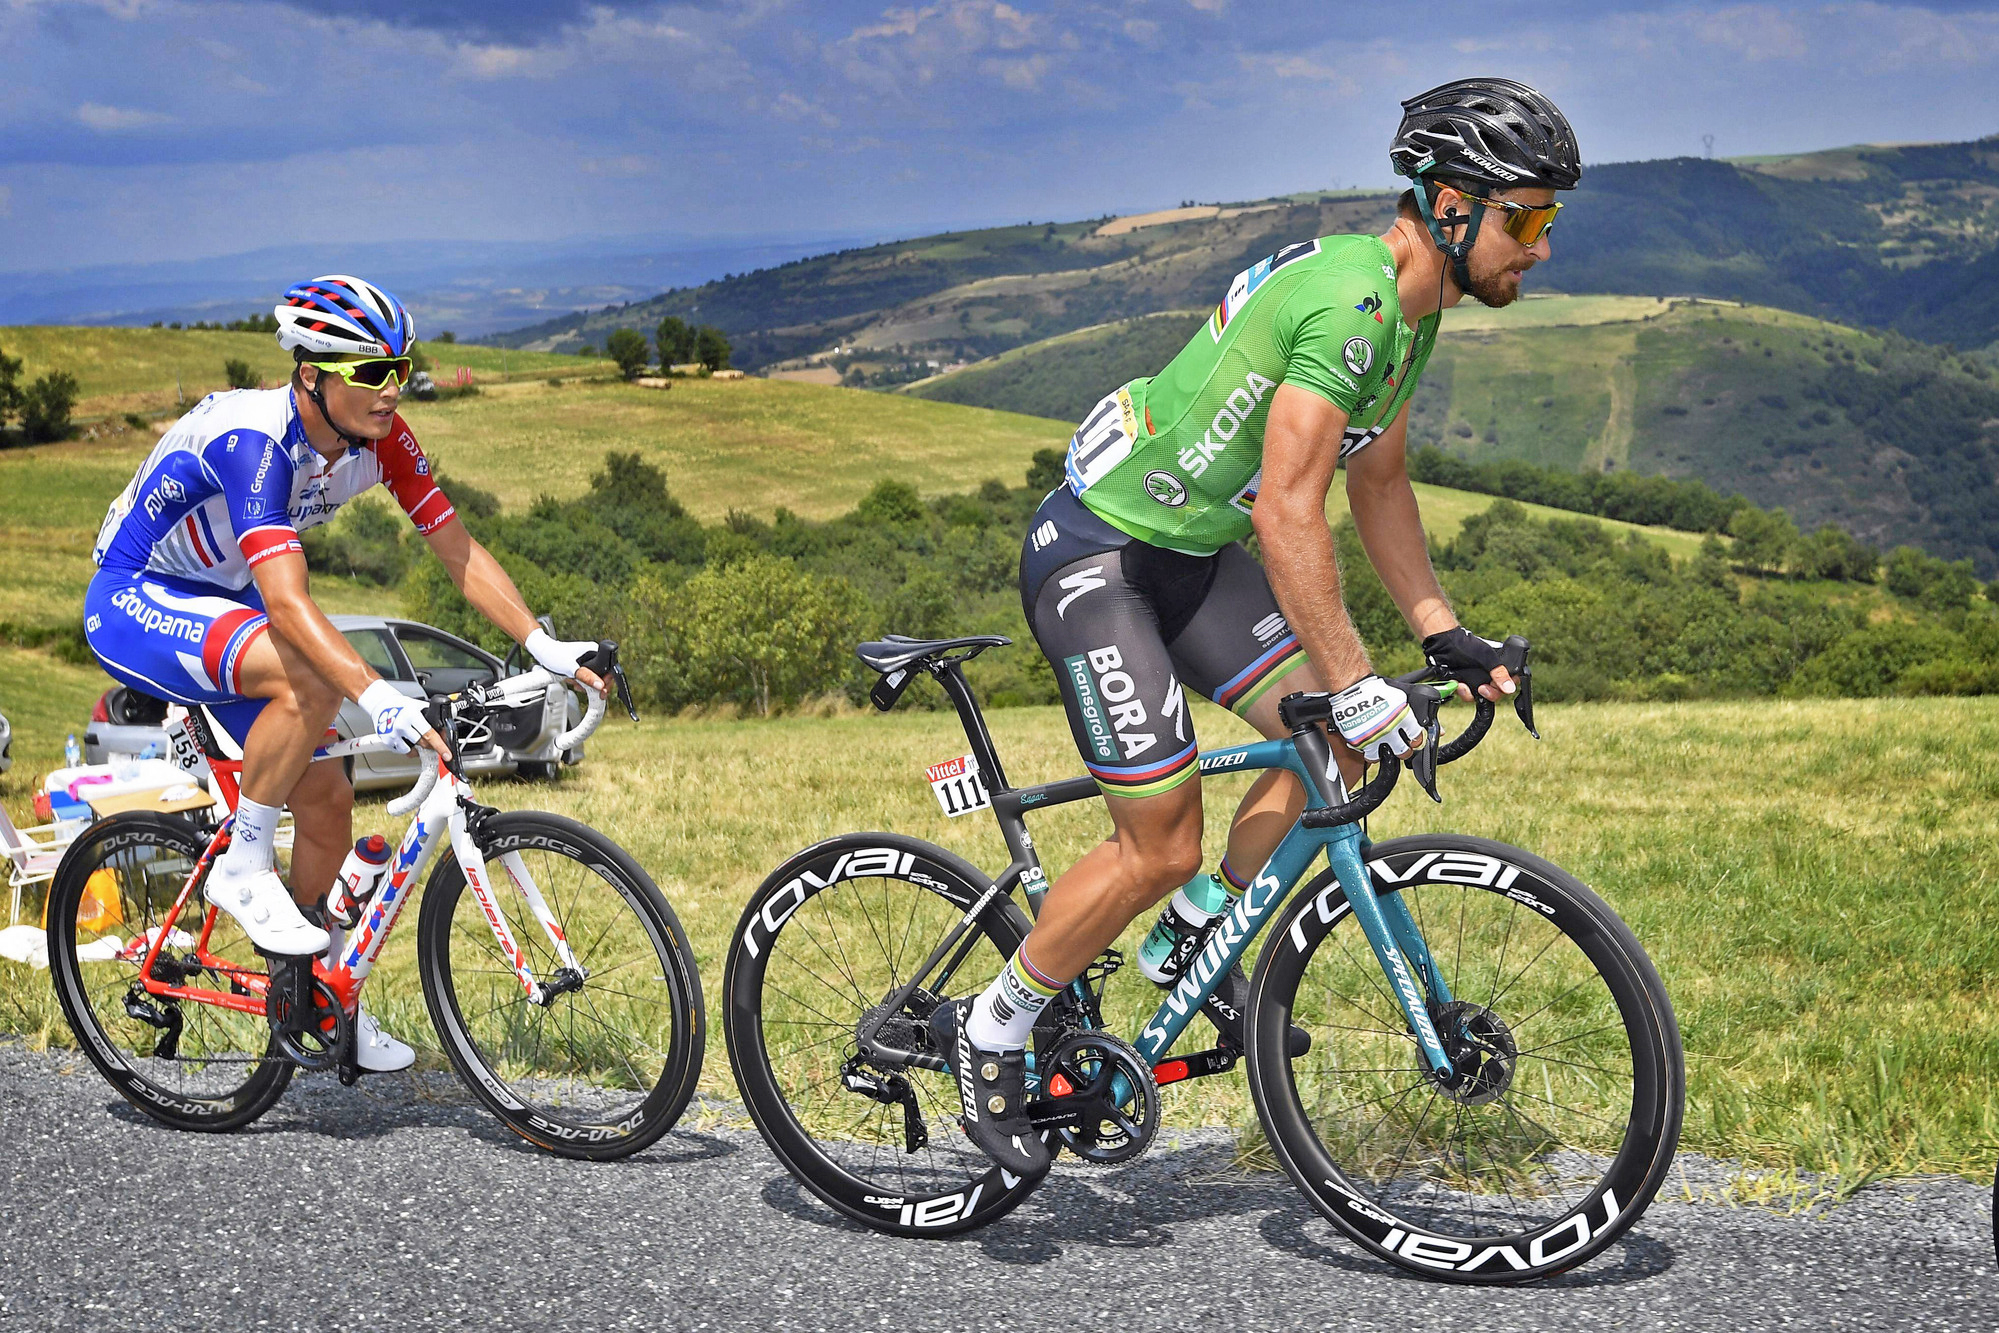 Peter Sagan is the prime example of an athlete balancing aerobic and glycolytic power extremely well.